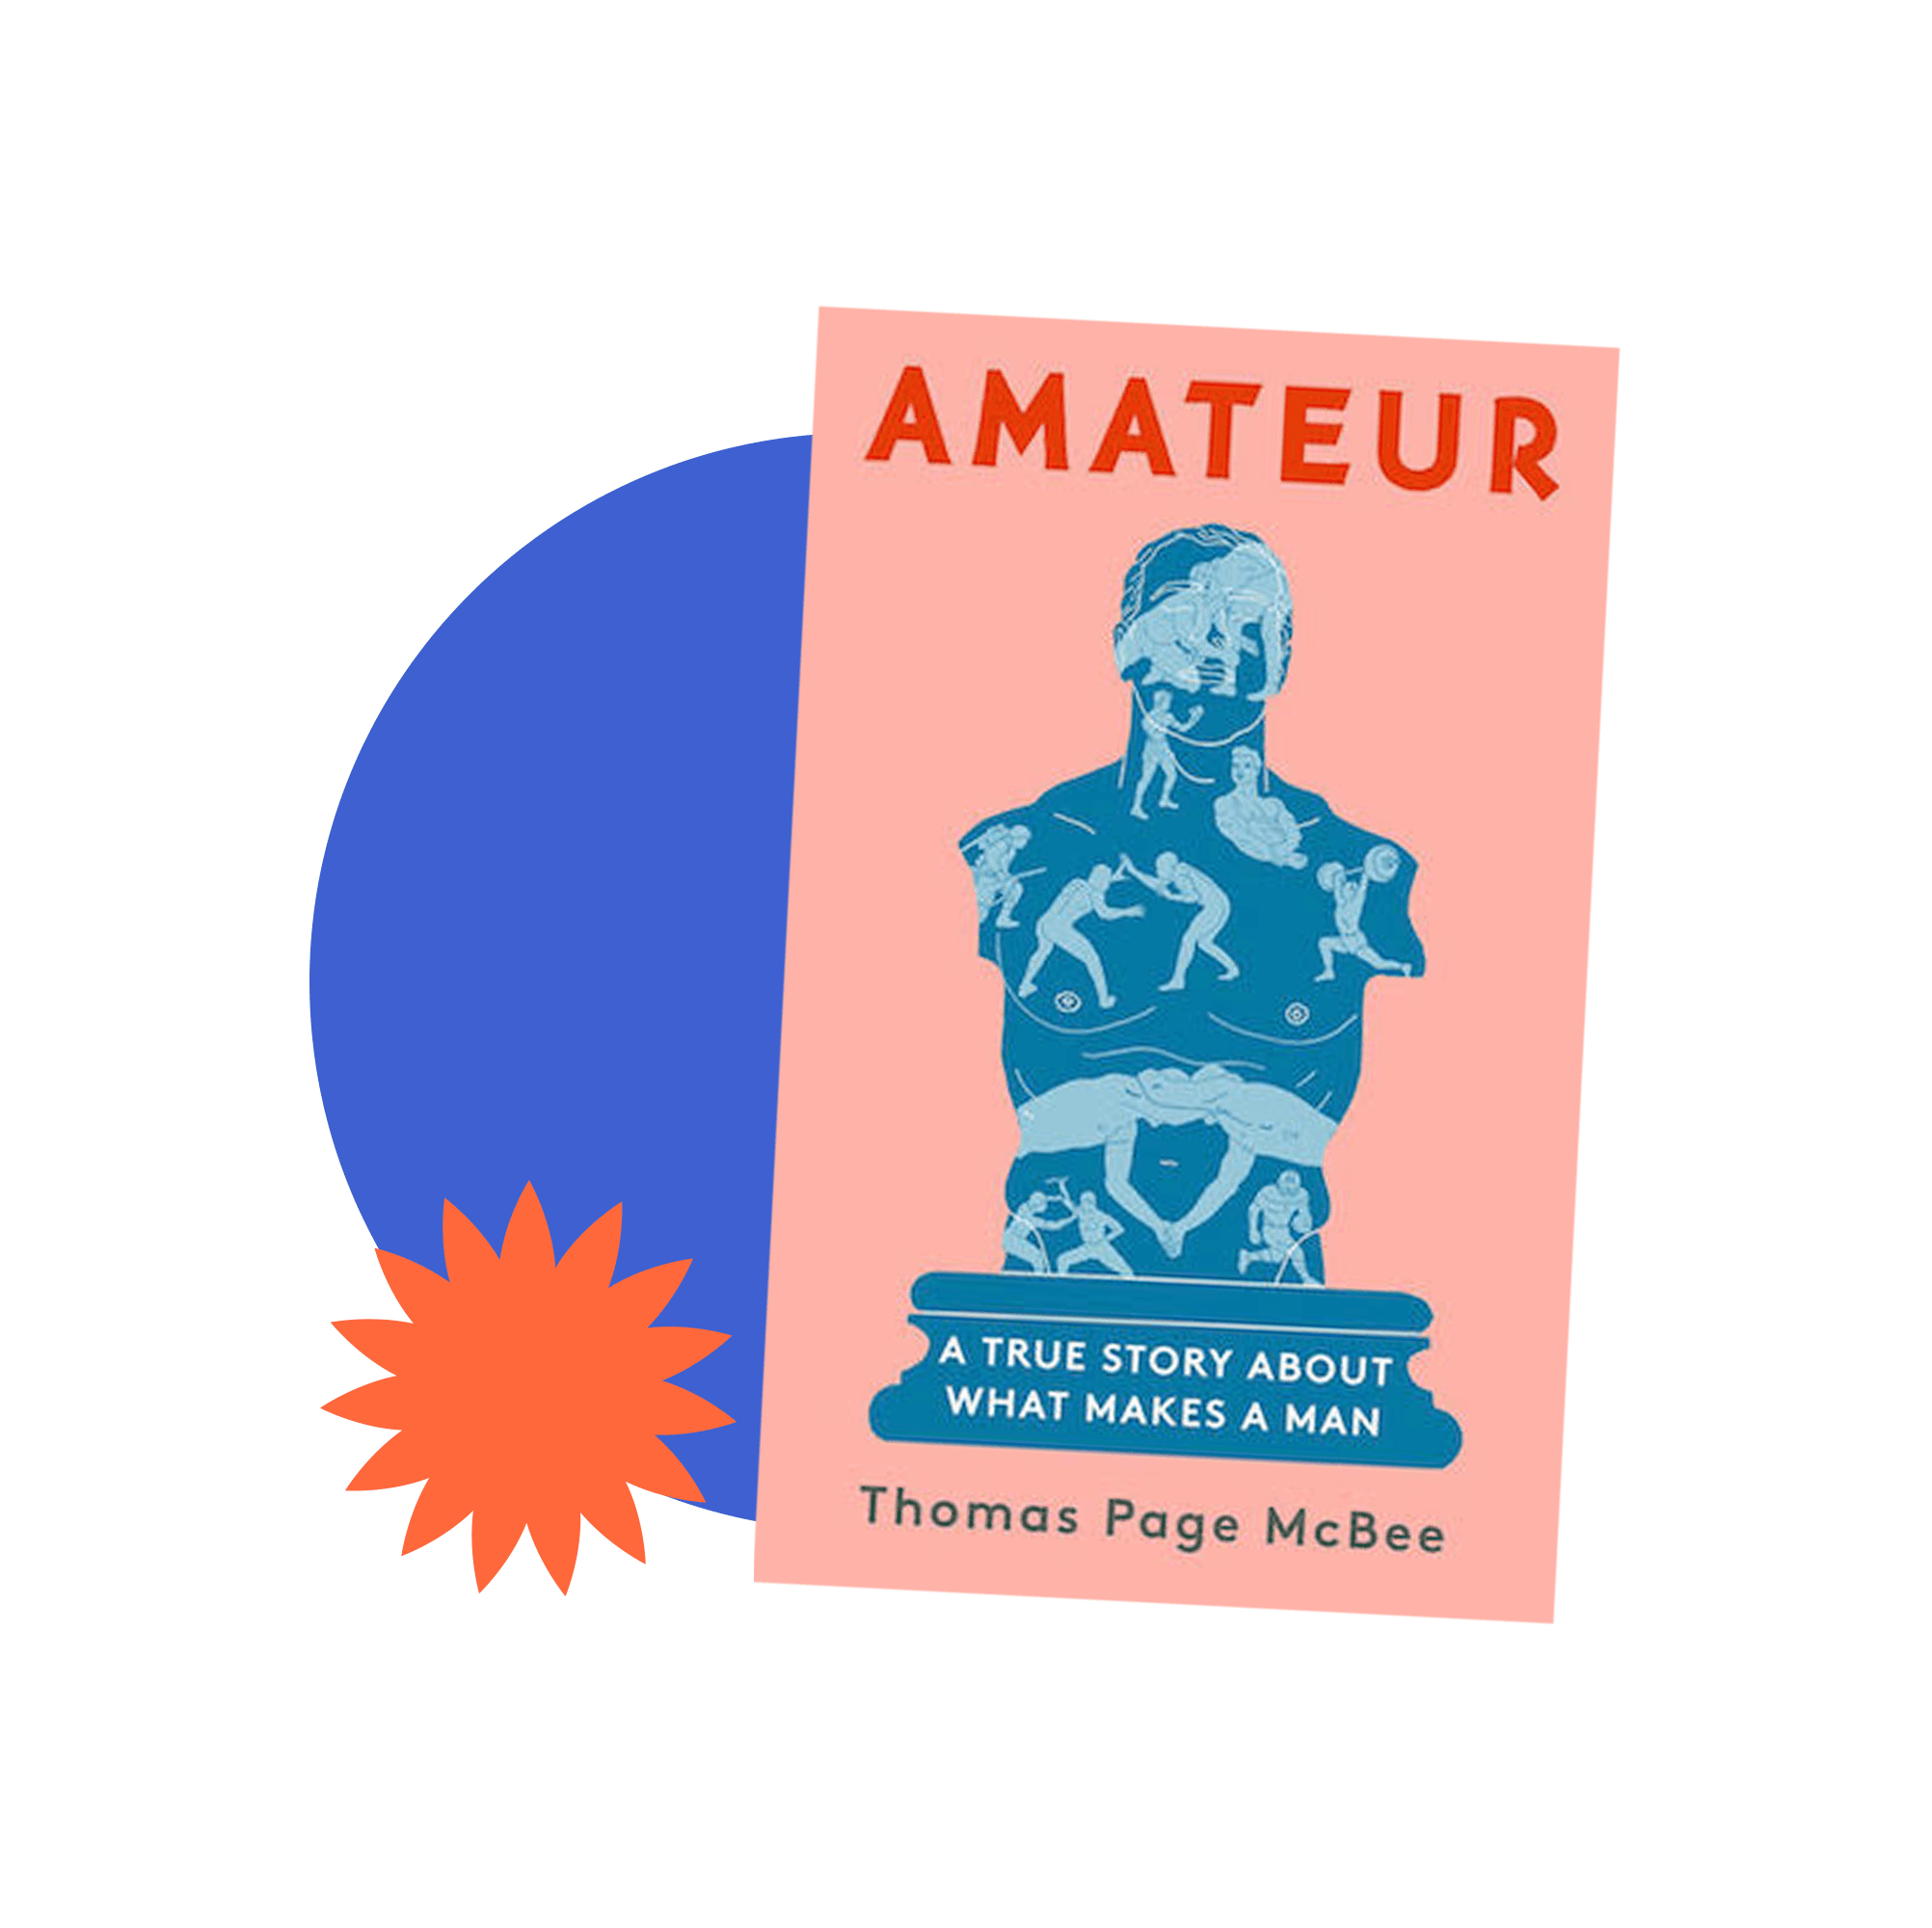 Book jacket cover for Amateur: A True Story About What Makes a Man by Thomas Page McBee